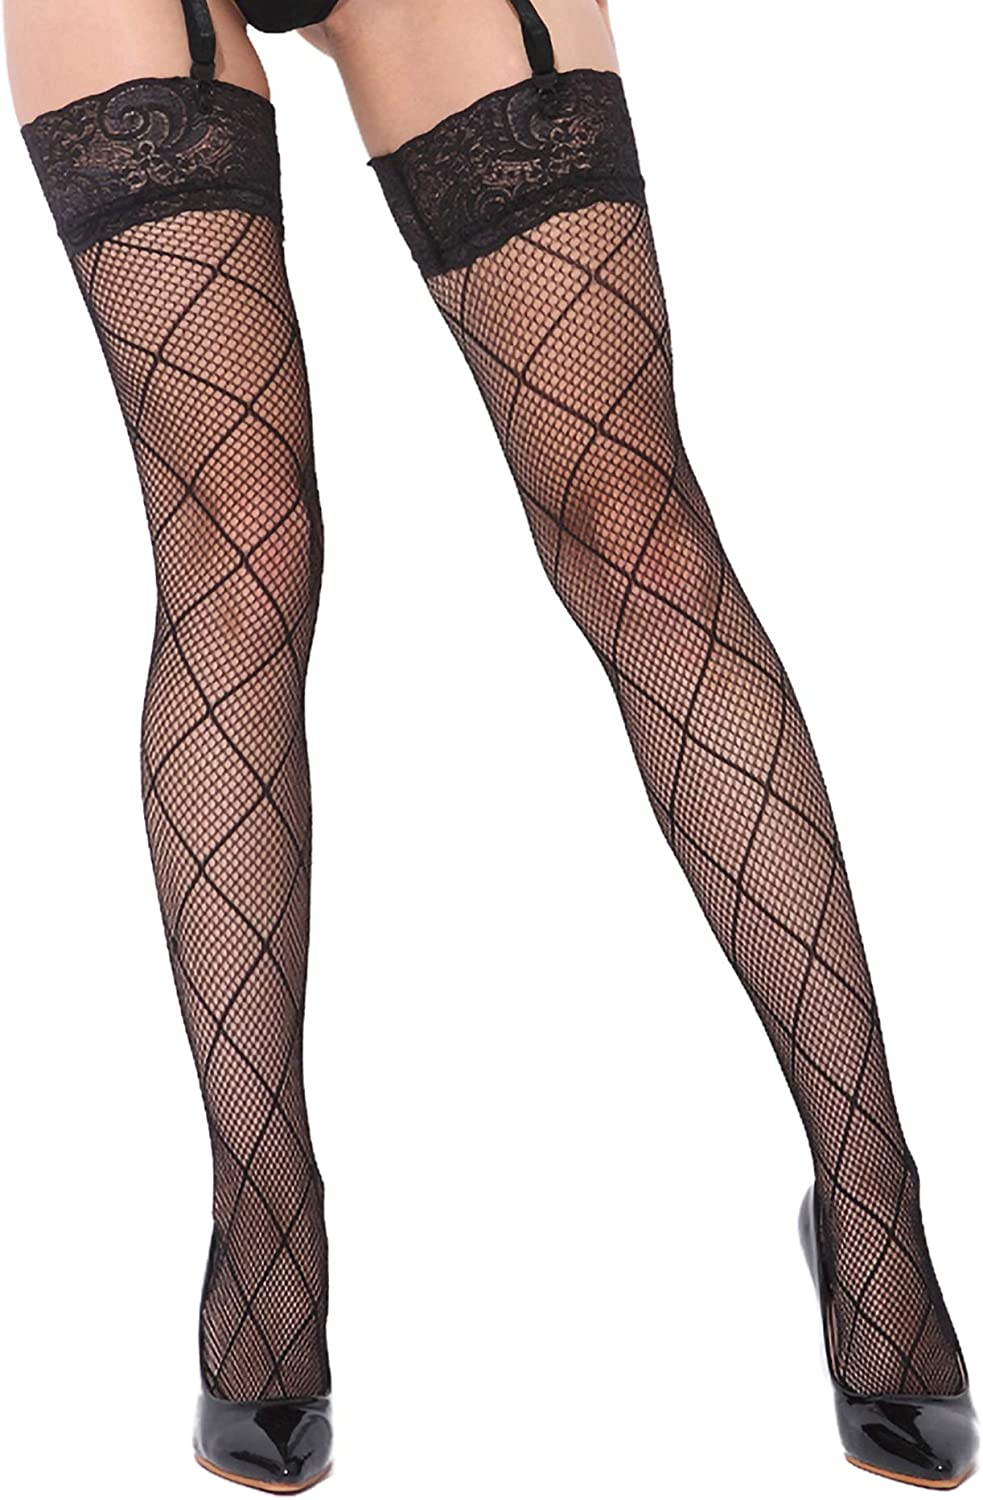 Women's Black Lace Top Sexy Fishnet Thigh High Stockings